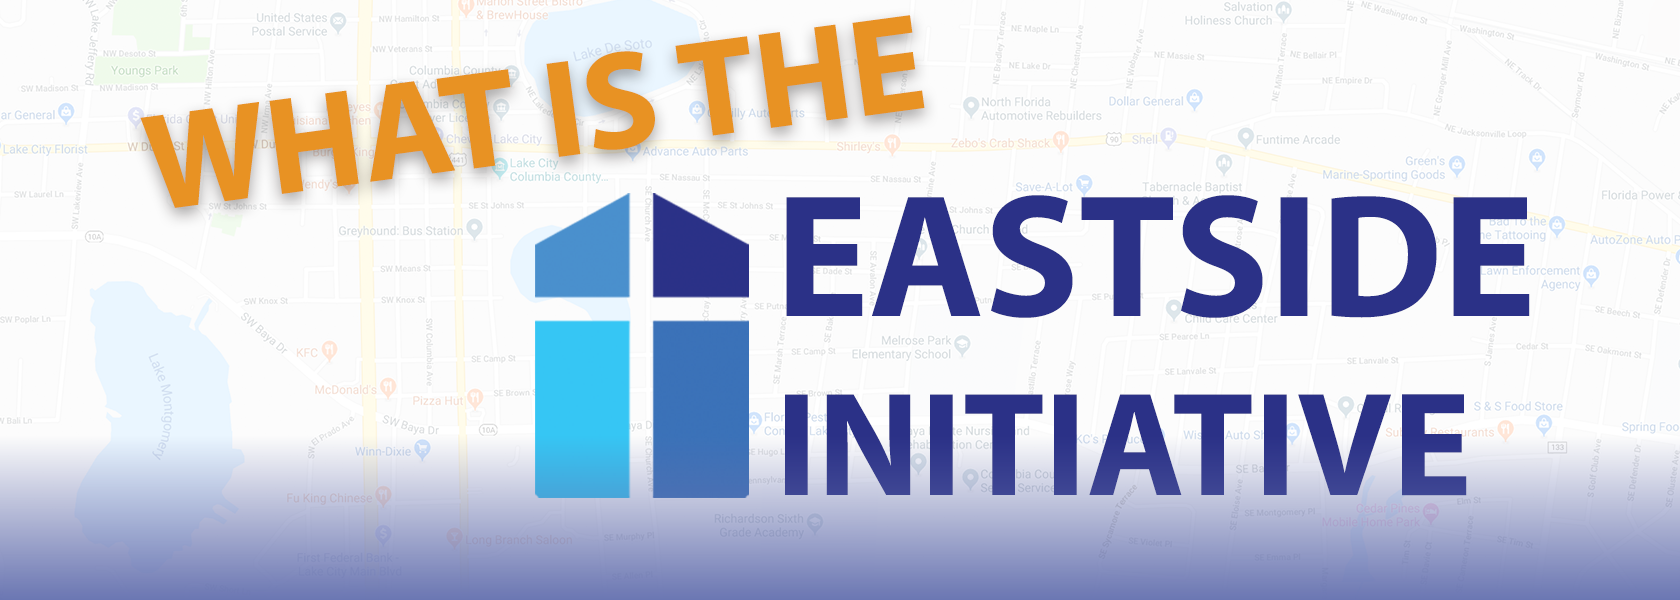 /images/r/what-is-the-eastside-initiative/c1680x600/what-is-the-eastside-initiative.jpg